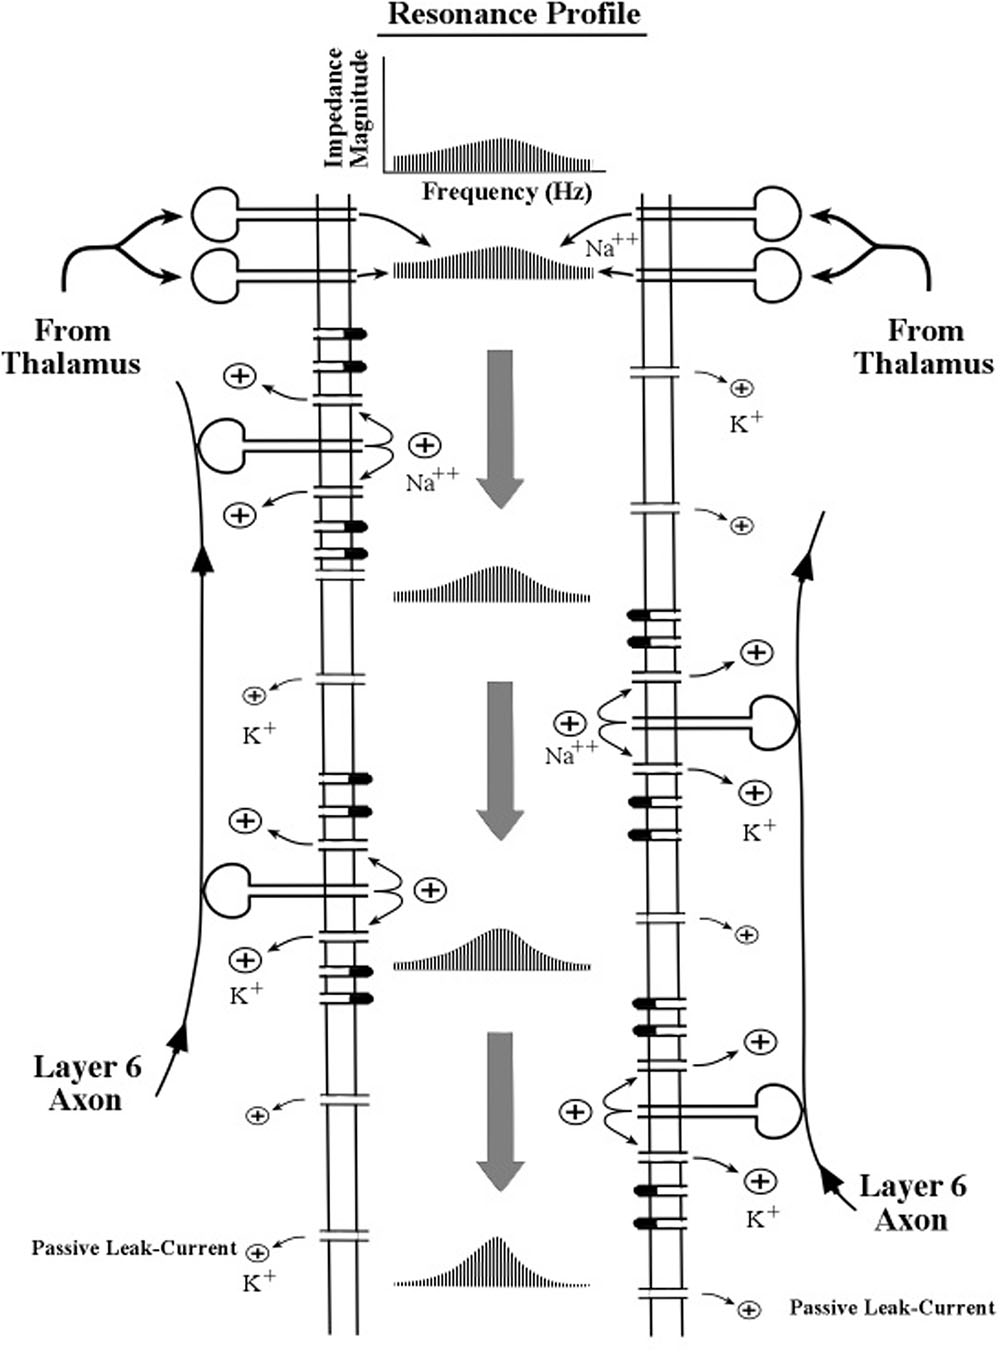 Frontiers Neuroelectric Tuning Of Cortical Oscillations By Apical Http Circuitdiagramorg Automaticnimhbatterychargercircuithtml Figure 4 Schematic Diagram